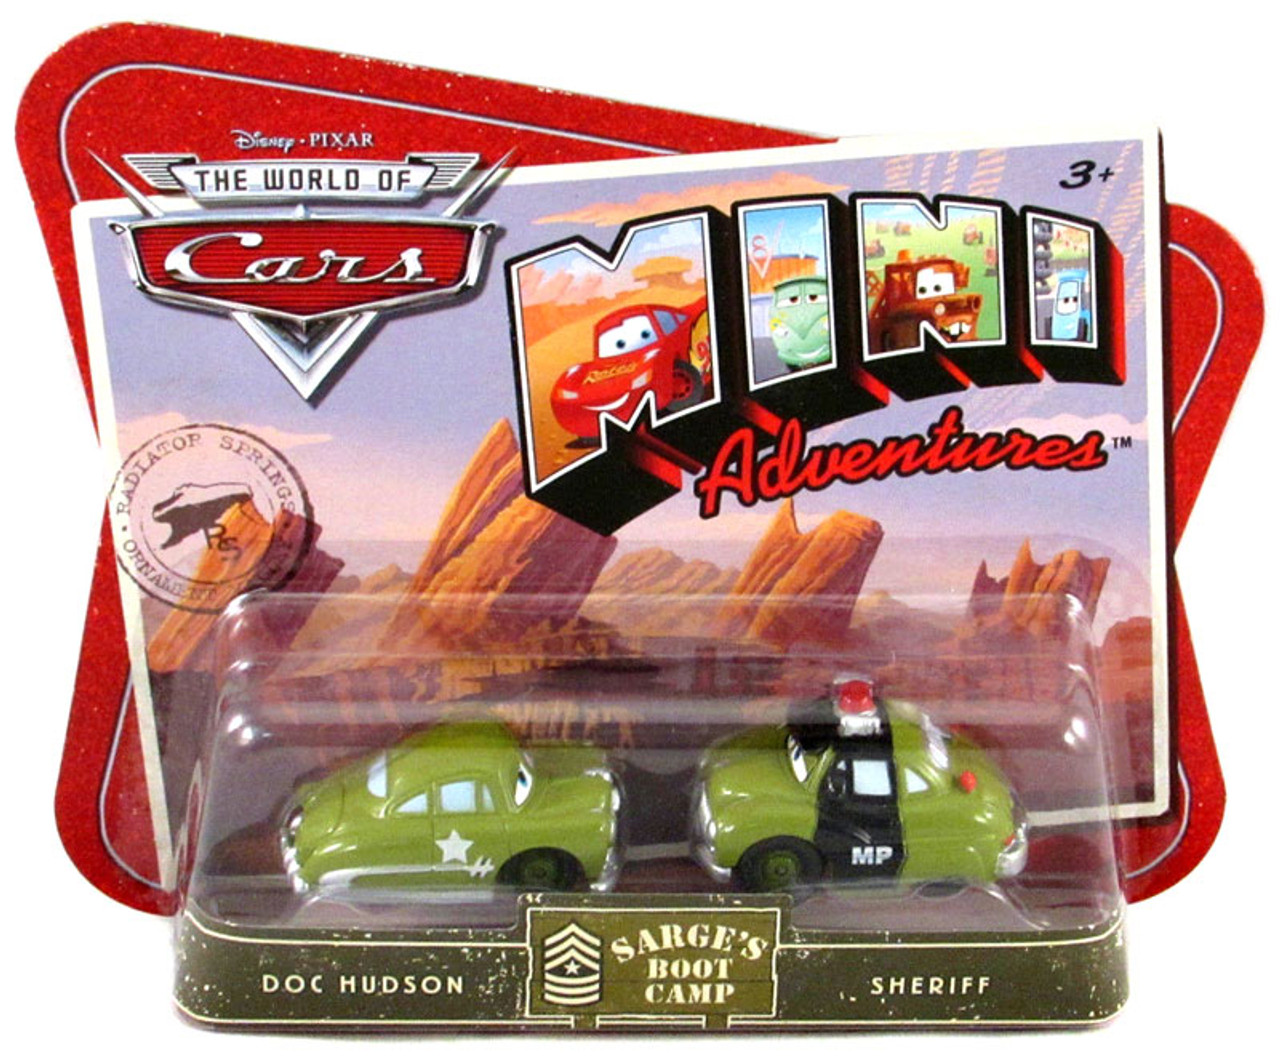 Disney Cars The World of Cars Mini Adventures Doc & Sheriff Plastic Car 2-Pack [Sarge's Boot Camp]